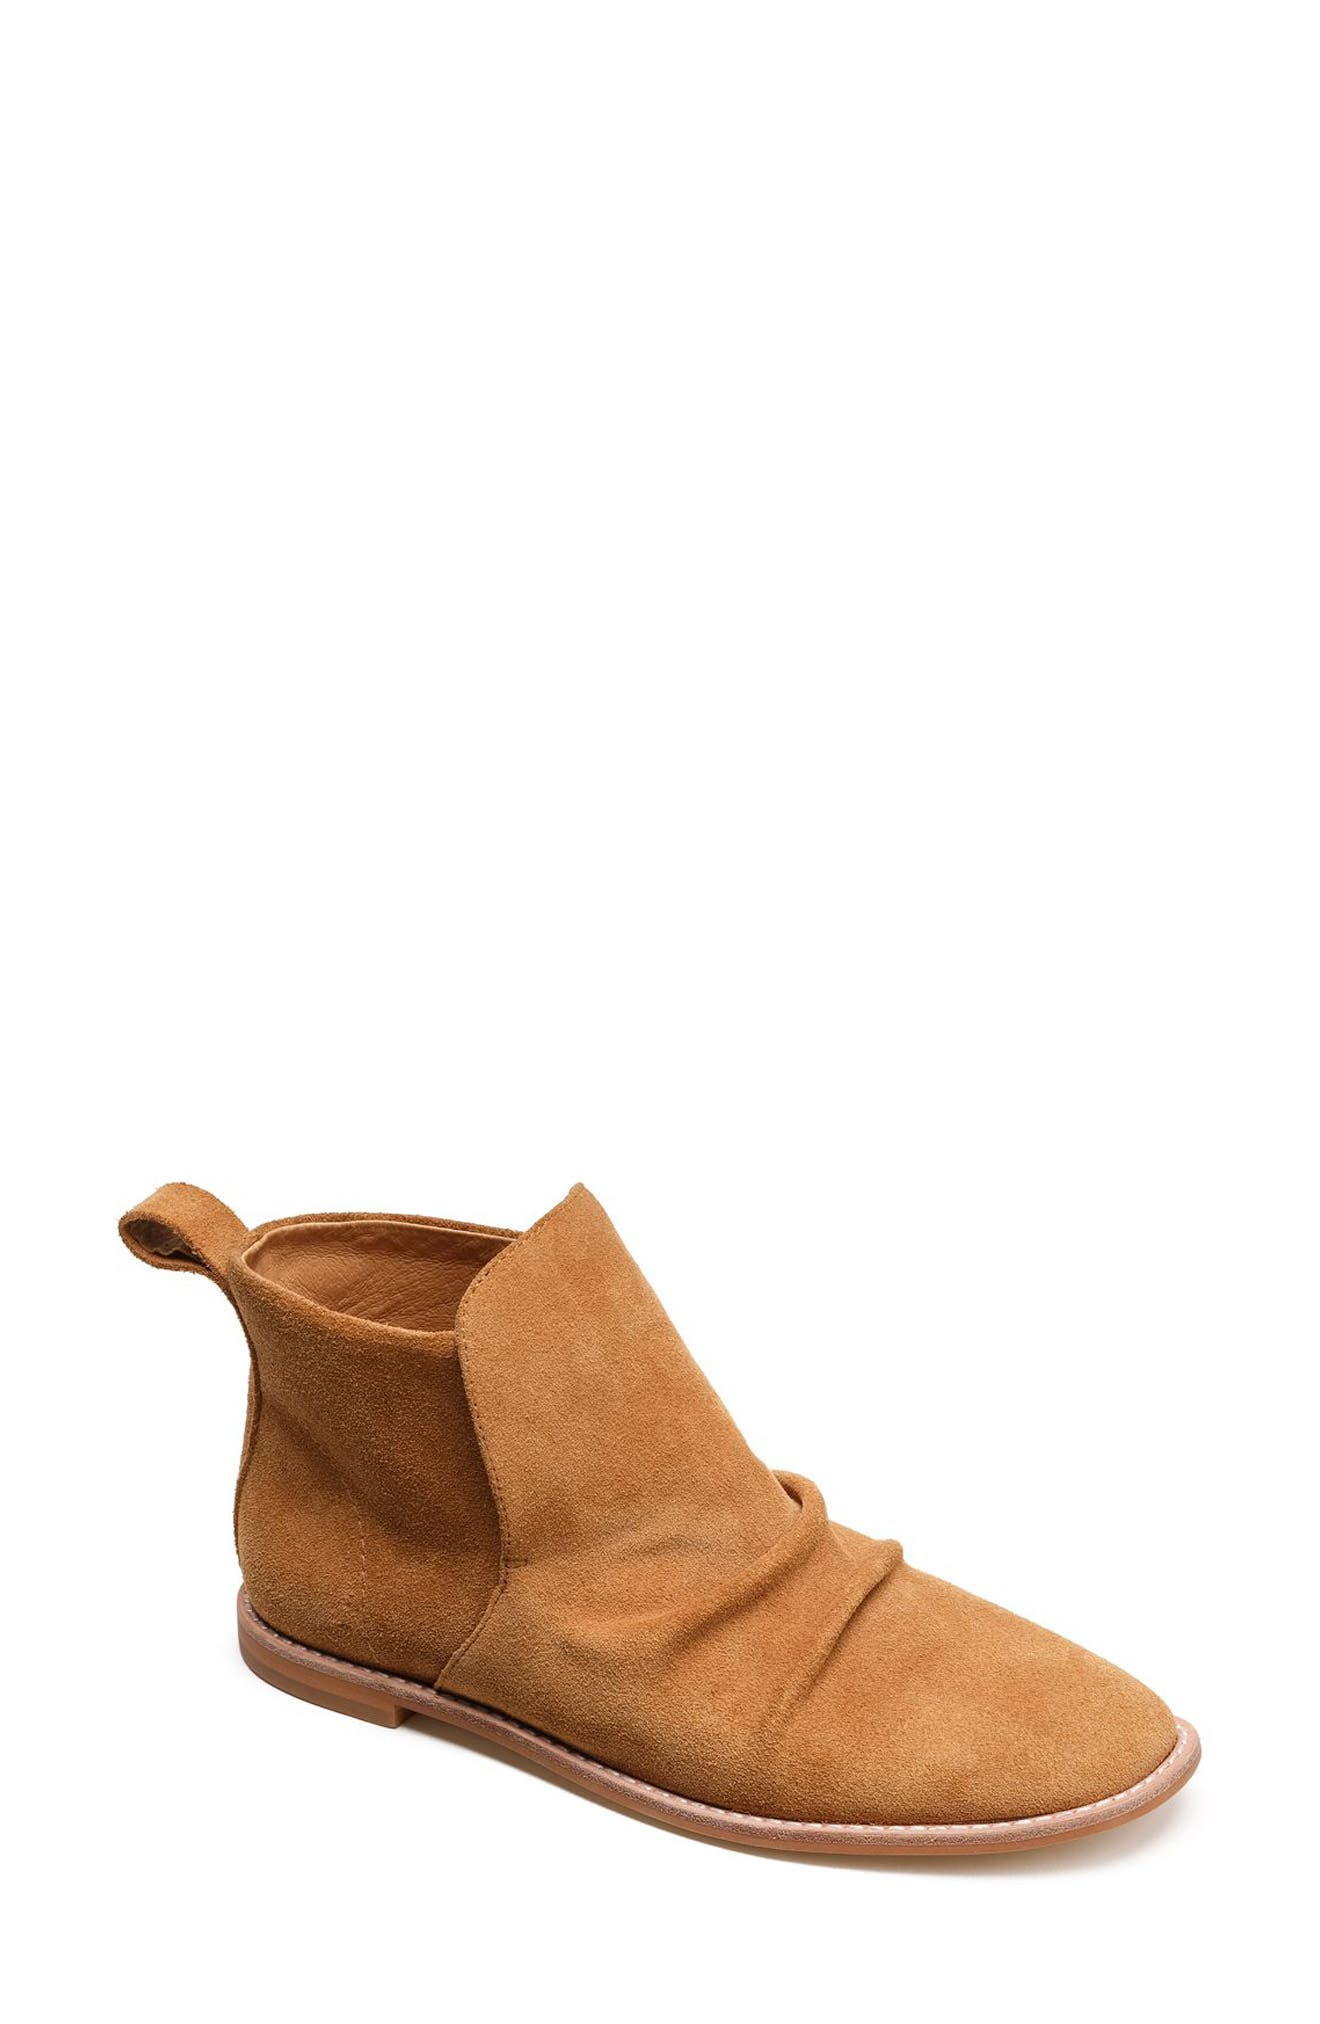 Macey Bootie,                             Main thumbnail 2, color,